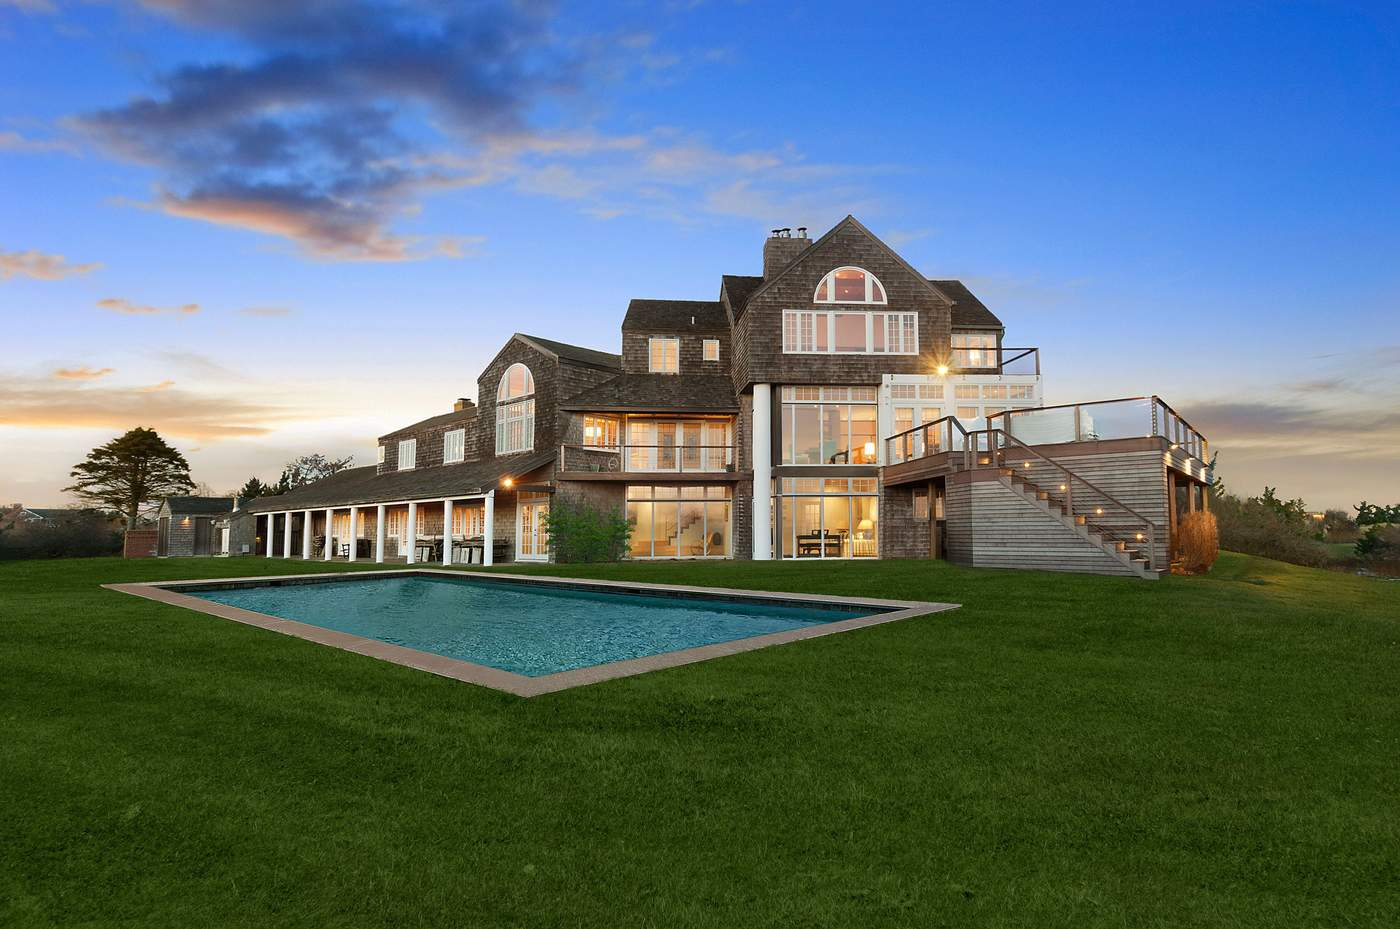 131 Crestview Drive in Sagaponack$34.995 millionIf looking for the ultimate home for entertaining, consider this 9,500 square-foot oceanfront classic in Sagaponack set on 2.6 private acres. There are seven bedrooms, a gorgeous great room, dining room and a state-of-the-art chef's kitchen. Outside there is a heated pool, pool house and plenty of space for a chef's garden, all just steps from the ocean. If you need to pick up some rosé to drink poolside, zip over to nearby Wölffer Estate winery.